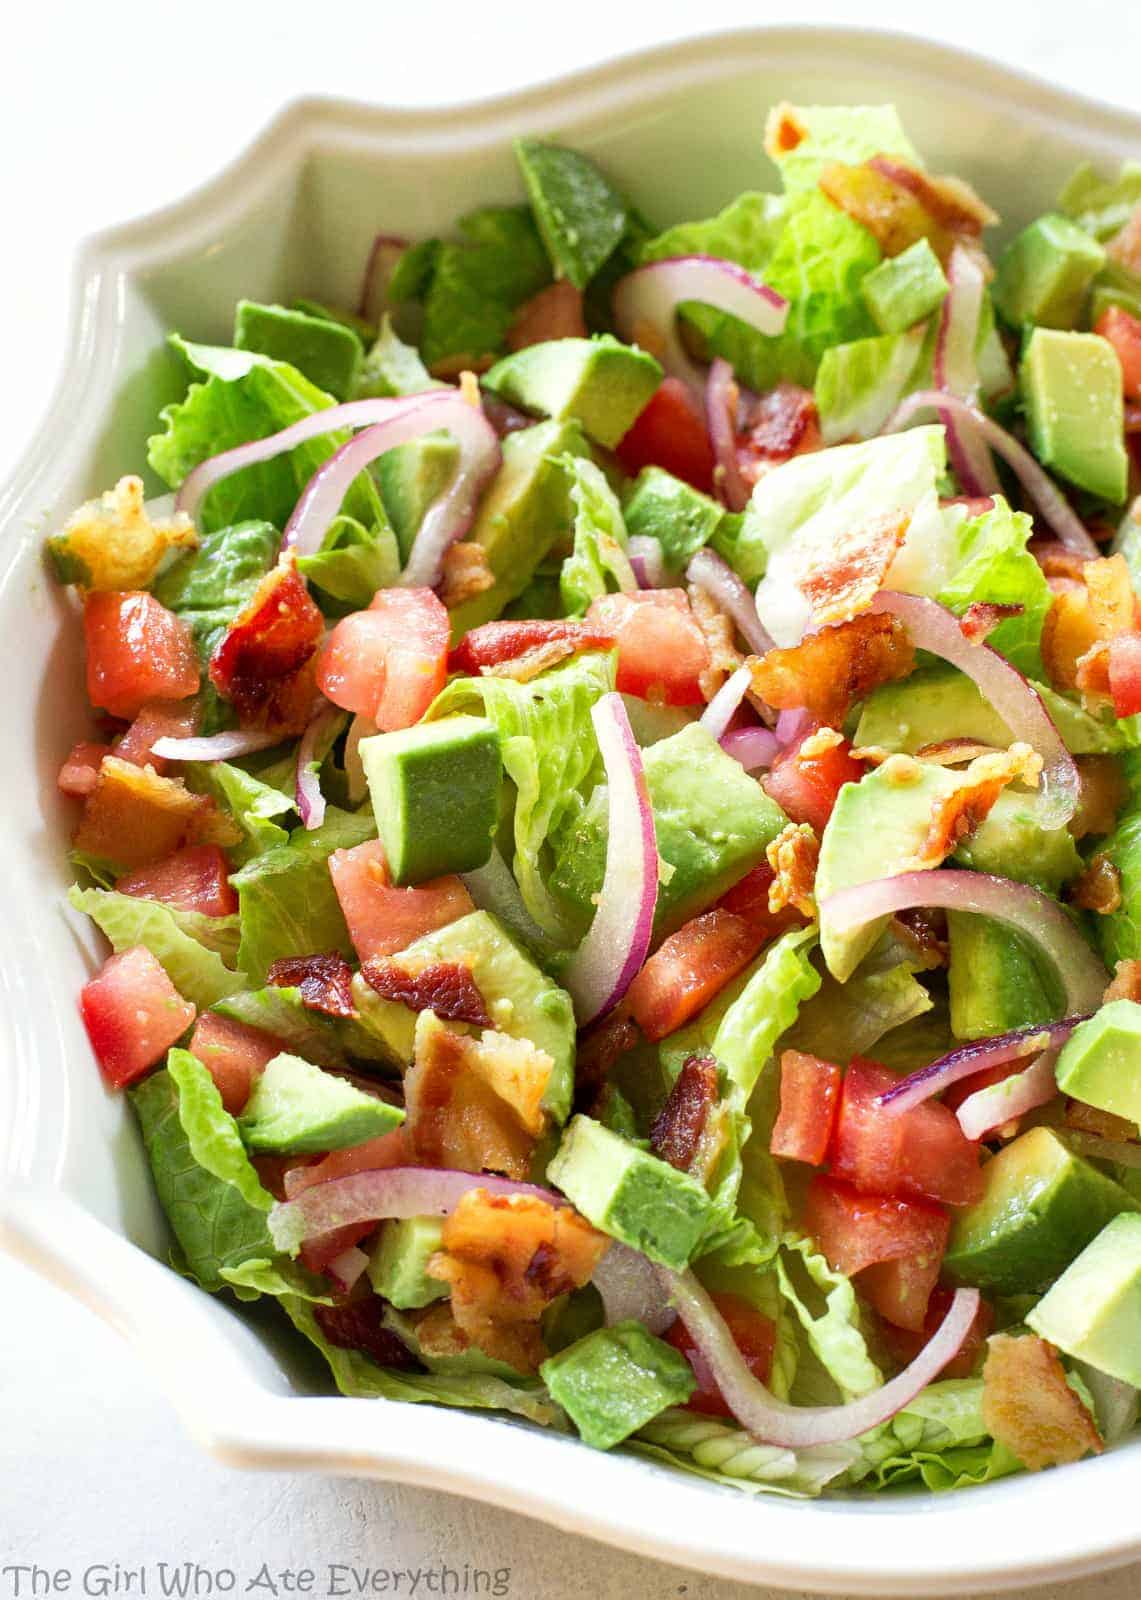 Guacamole Tossed Salad Recipe The Girl Who Ate Everything